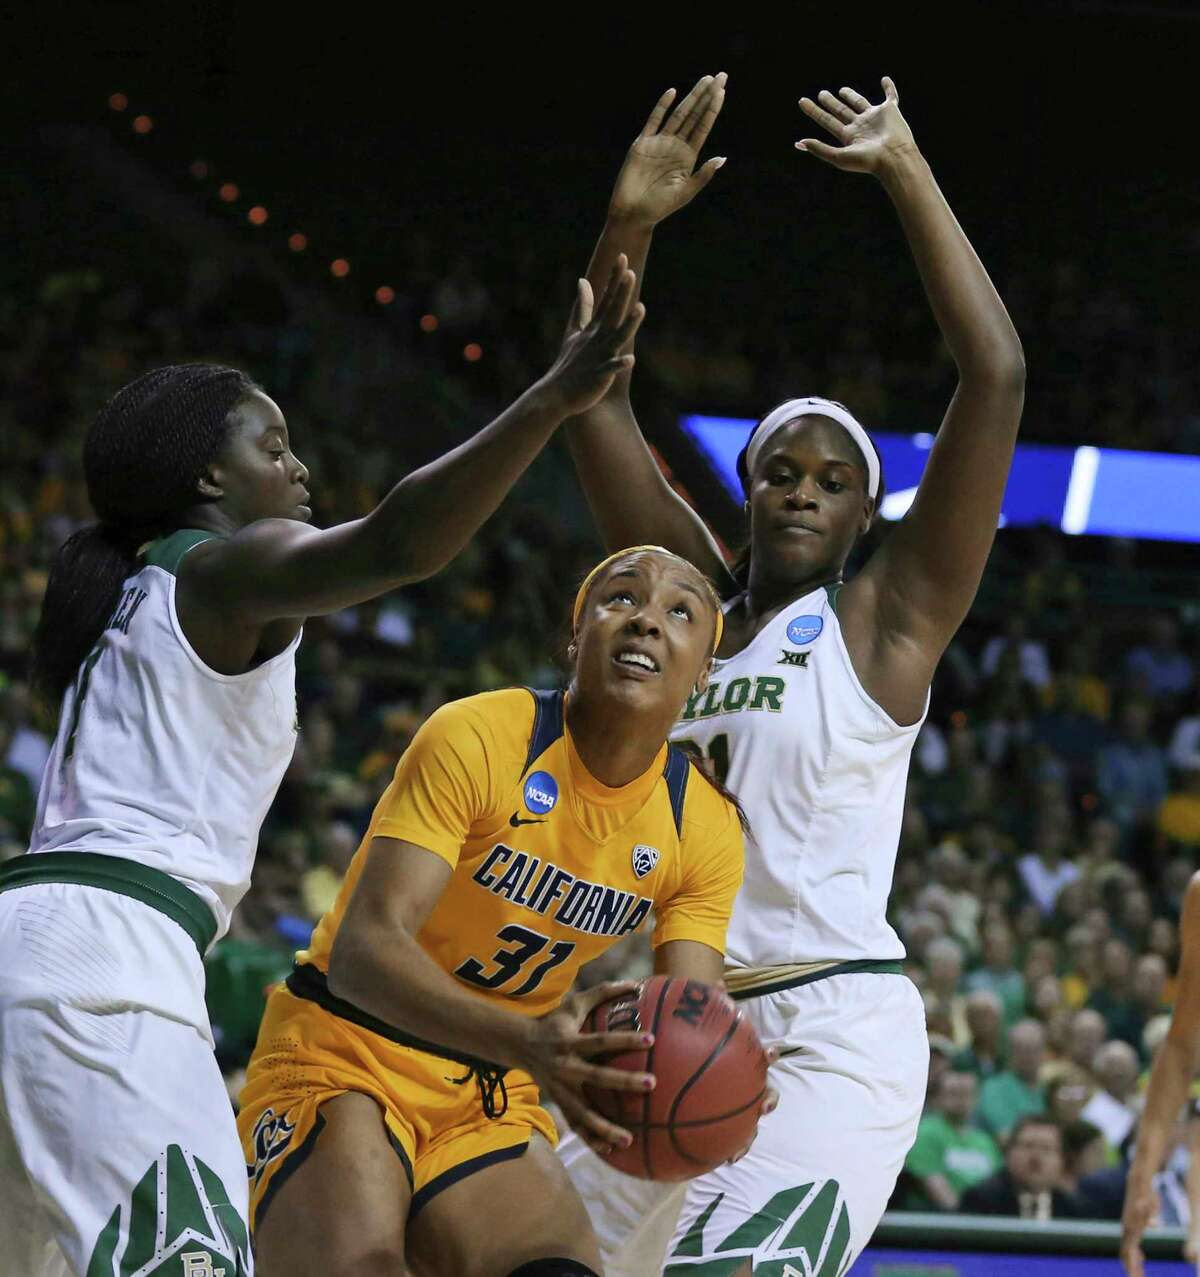 California forward Kristine Anigwe, center, is guarded by Baylor forward Dekeiya Cohen, left, and center Kalani Brown during the first half of a second-round game in the NCAA women's college basketball tournament in Waco, Texas, Monday, March 20, 2017.